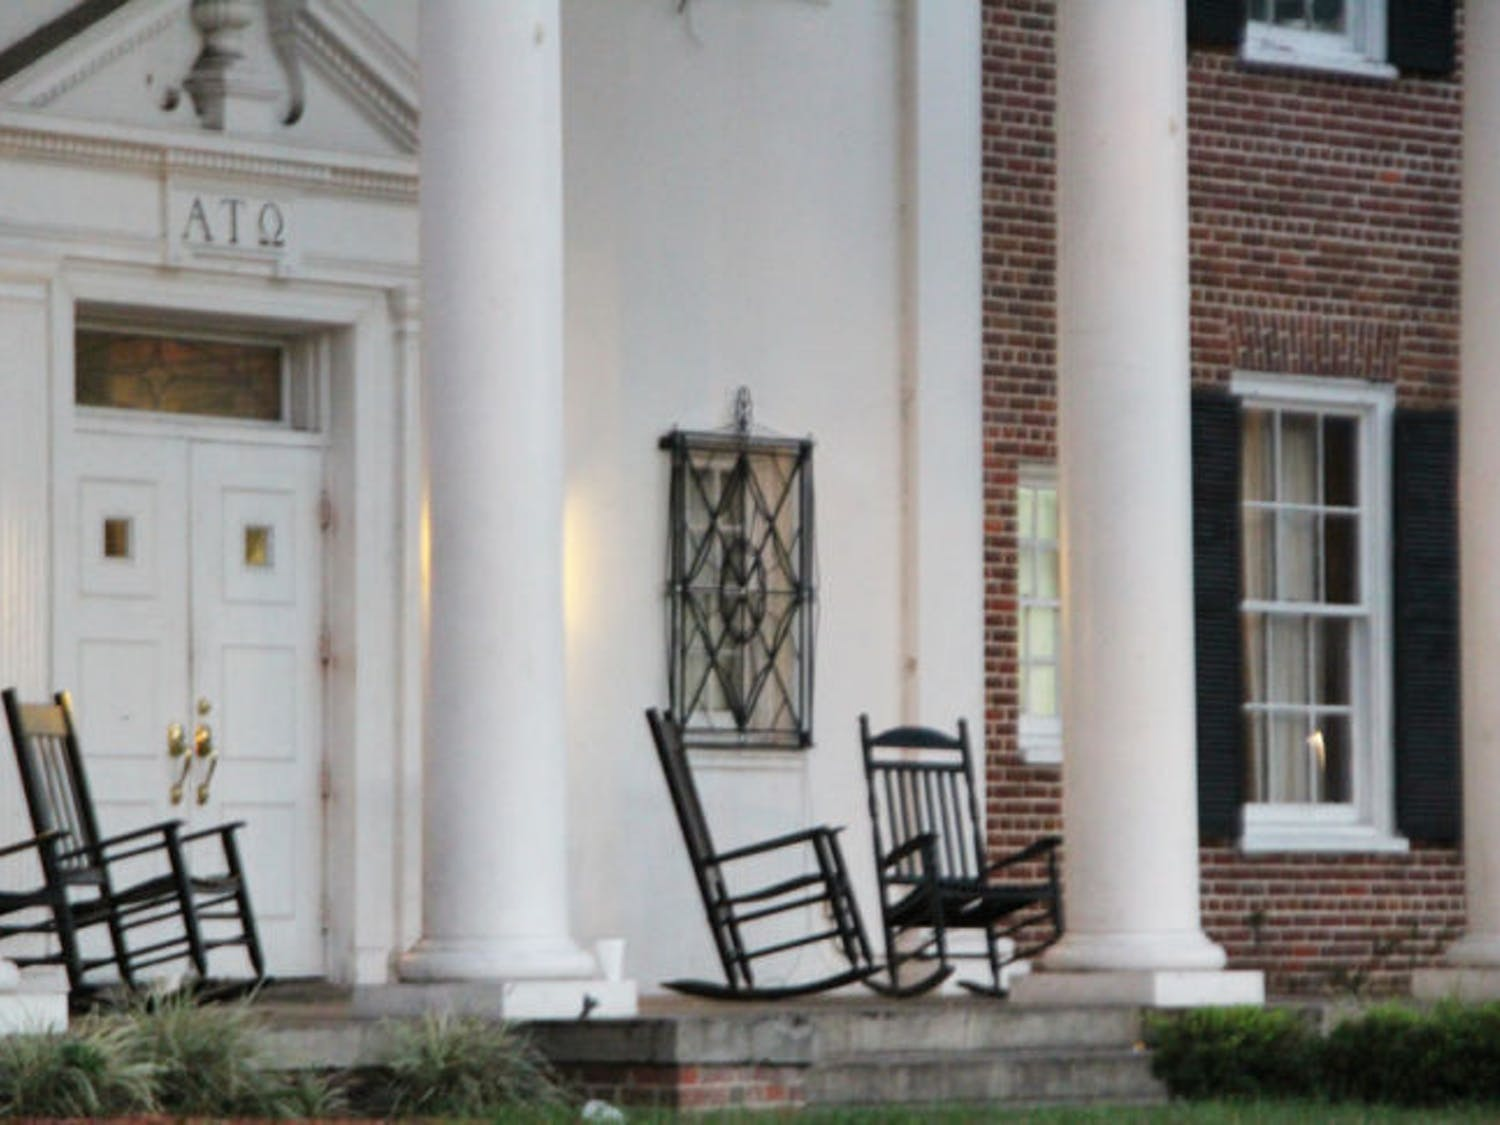 UF's chapter of Alpha Tau Omega received a letter from UF President Bernie Machen about an incident in front of the fraternity house.